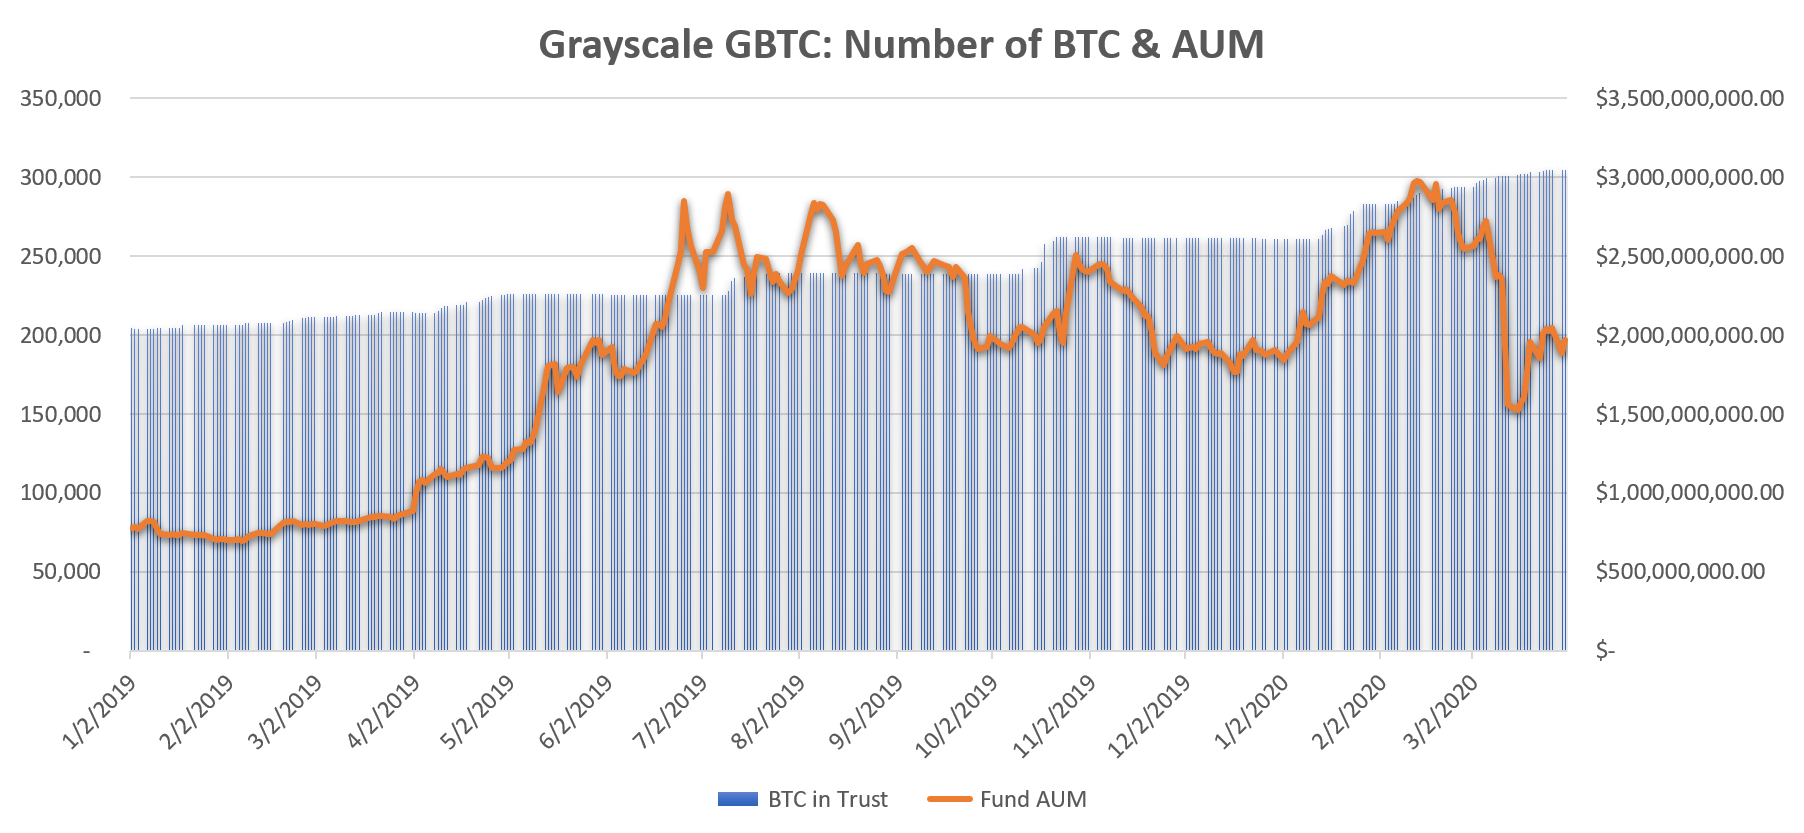 GBTC BTC Holding & Assets Under Management. Source: Cointelegraph, Grayscale.